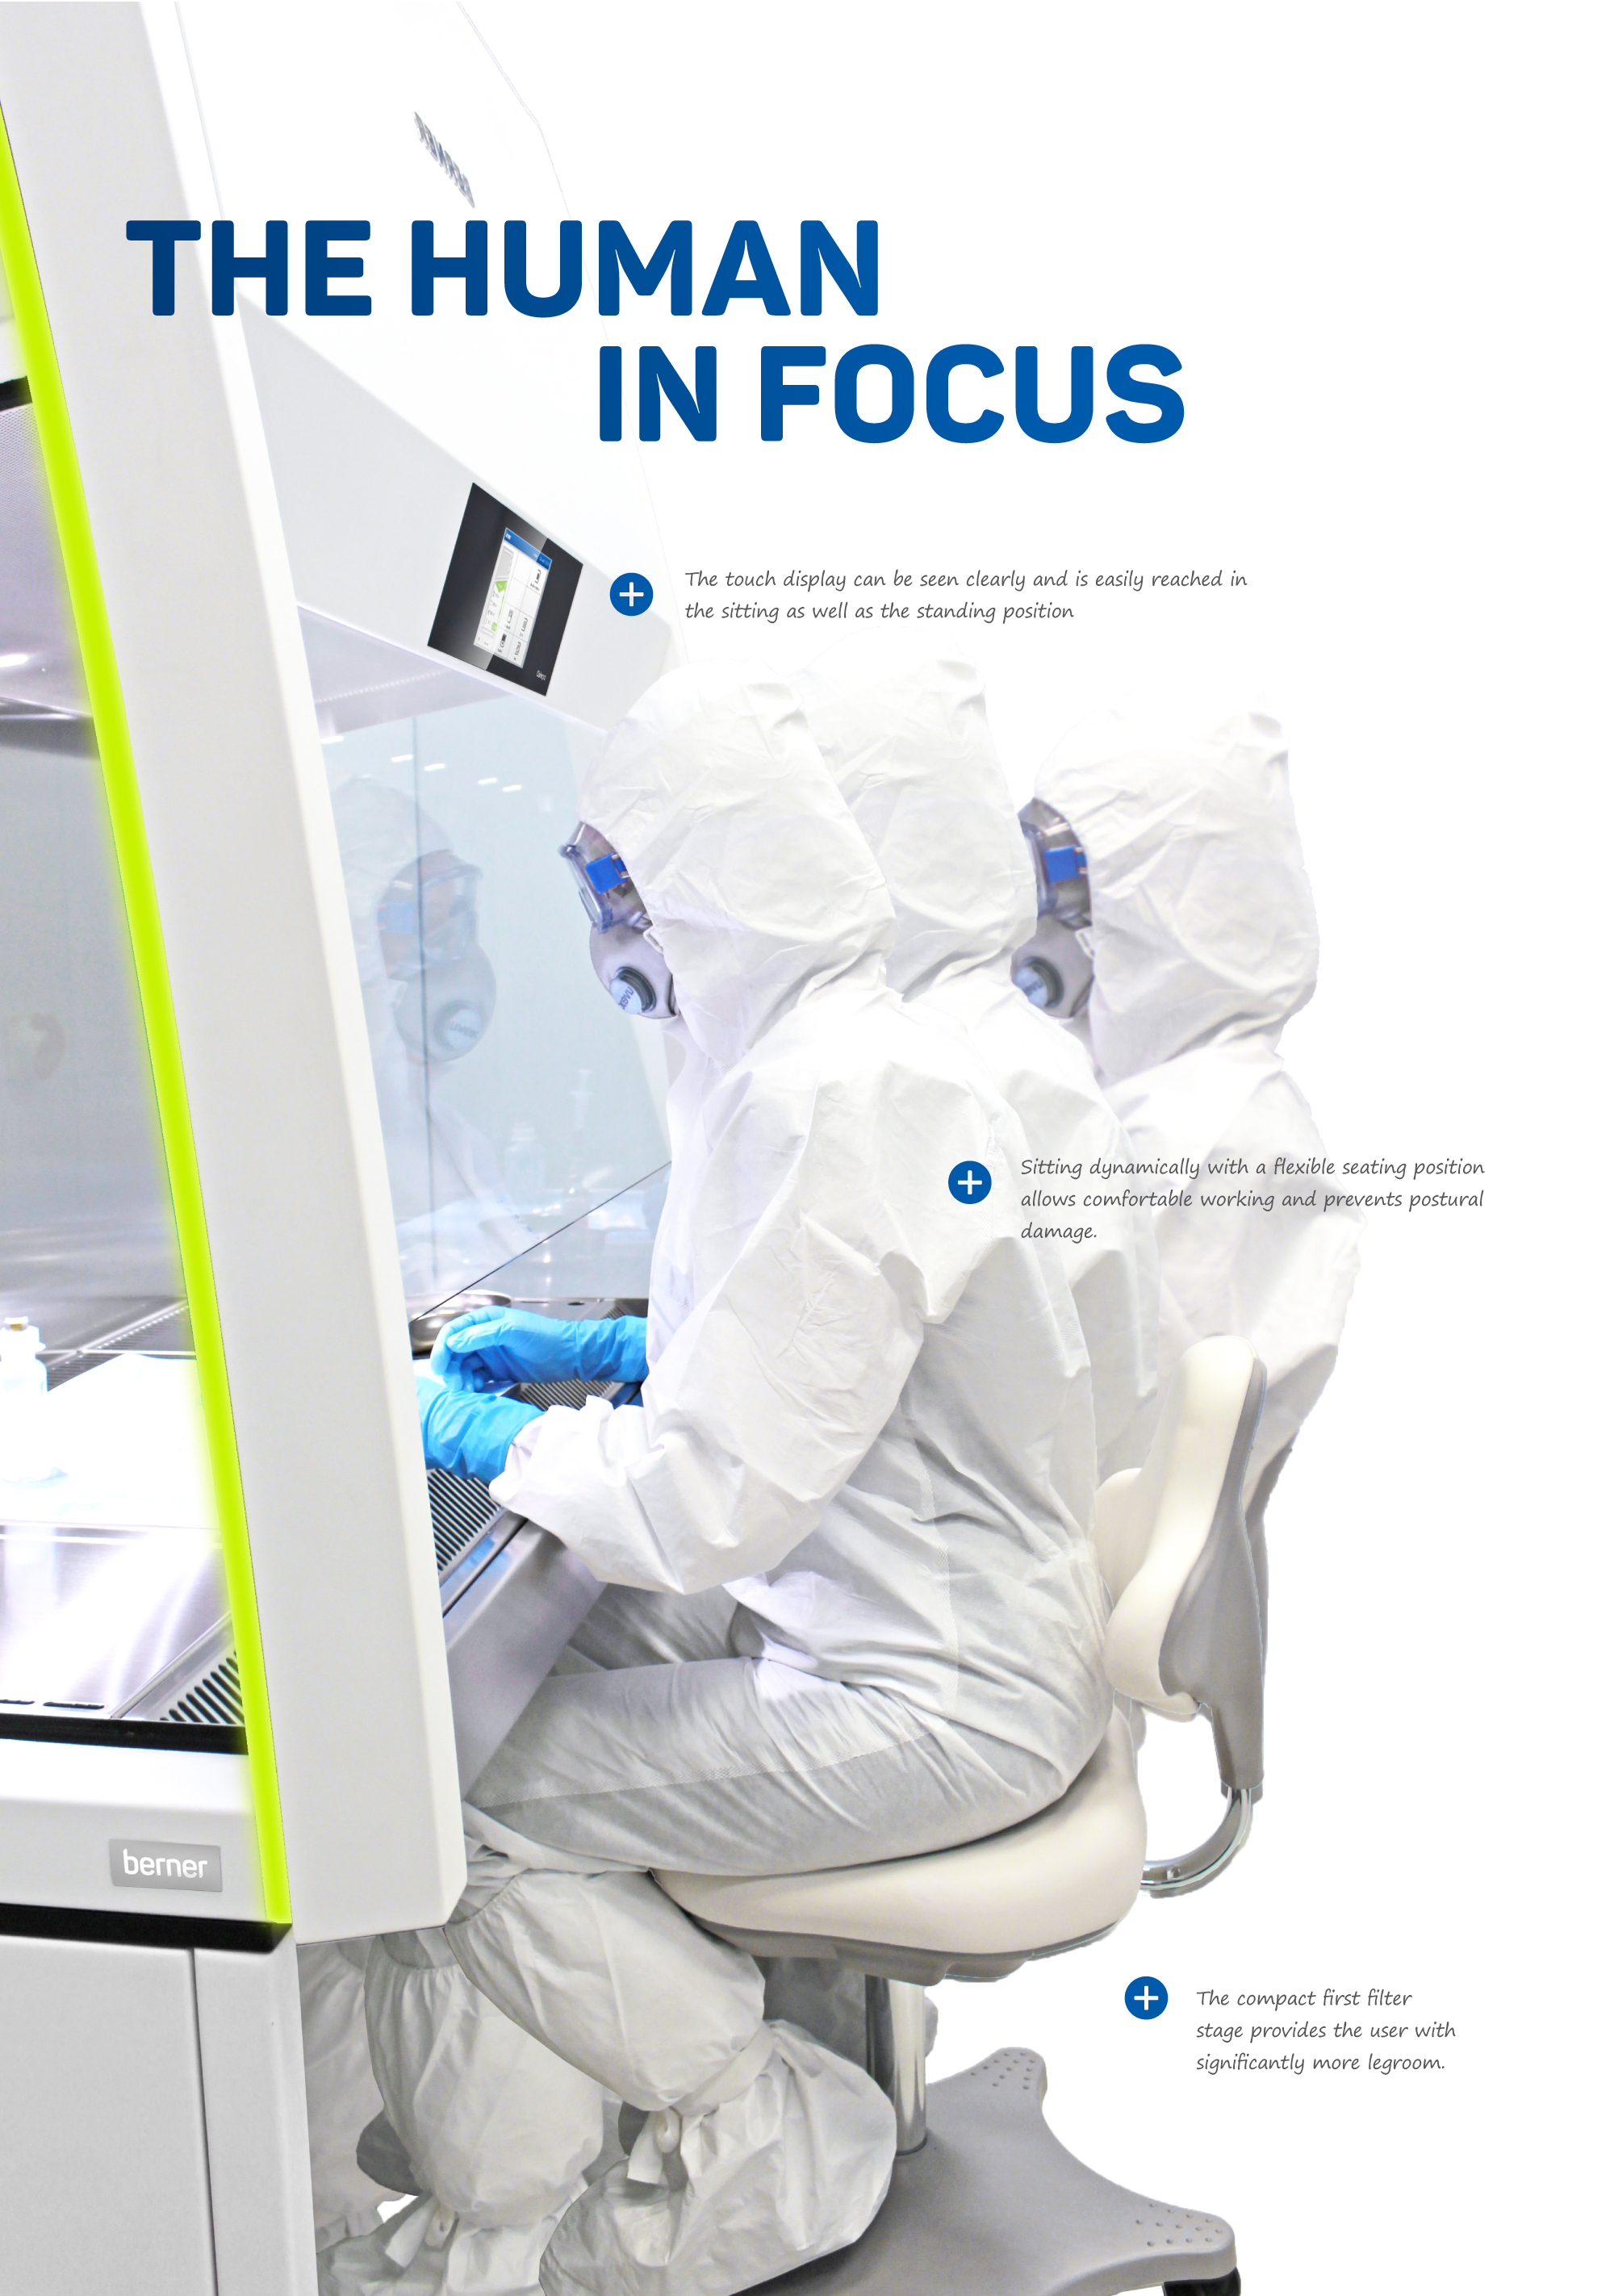 The human in focus - Ergonomics